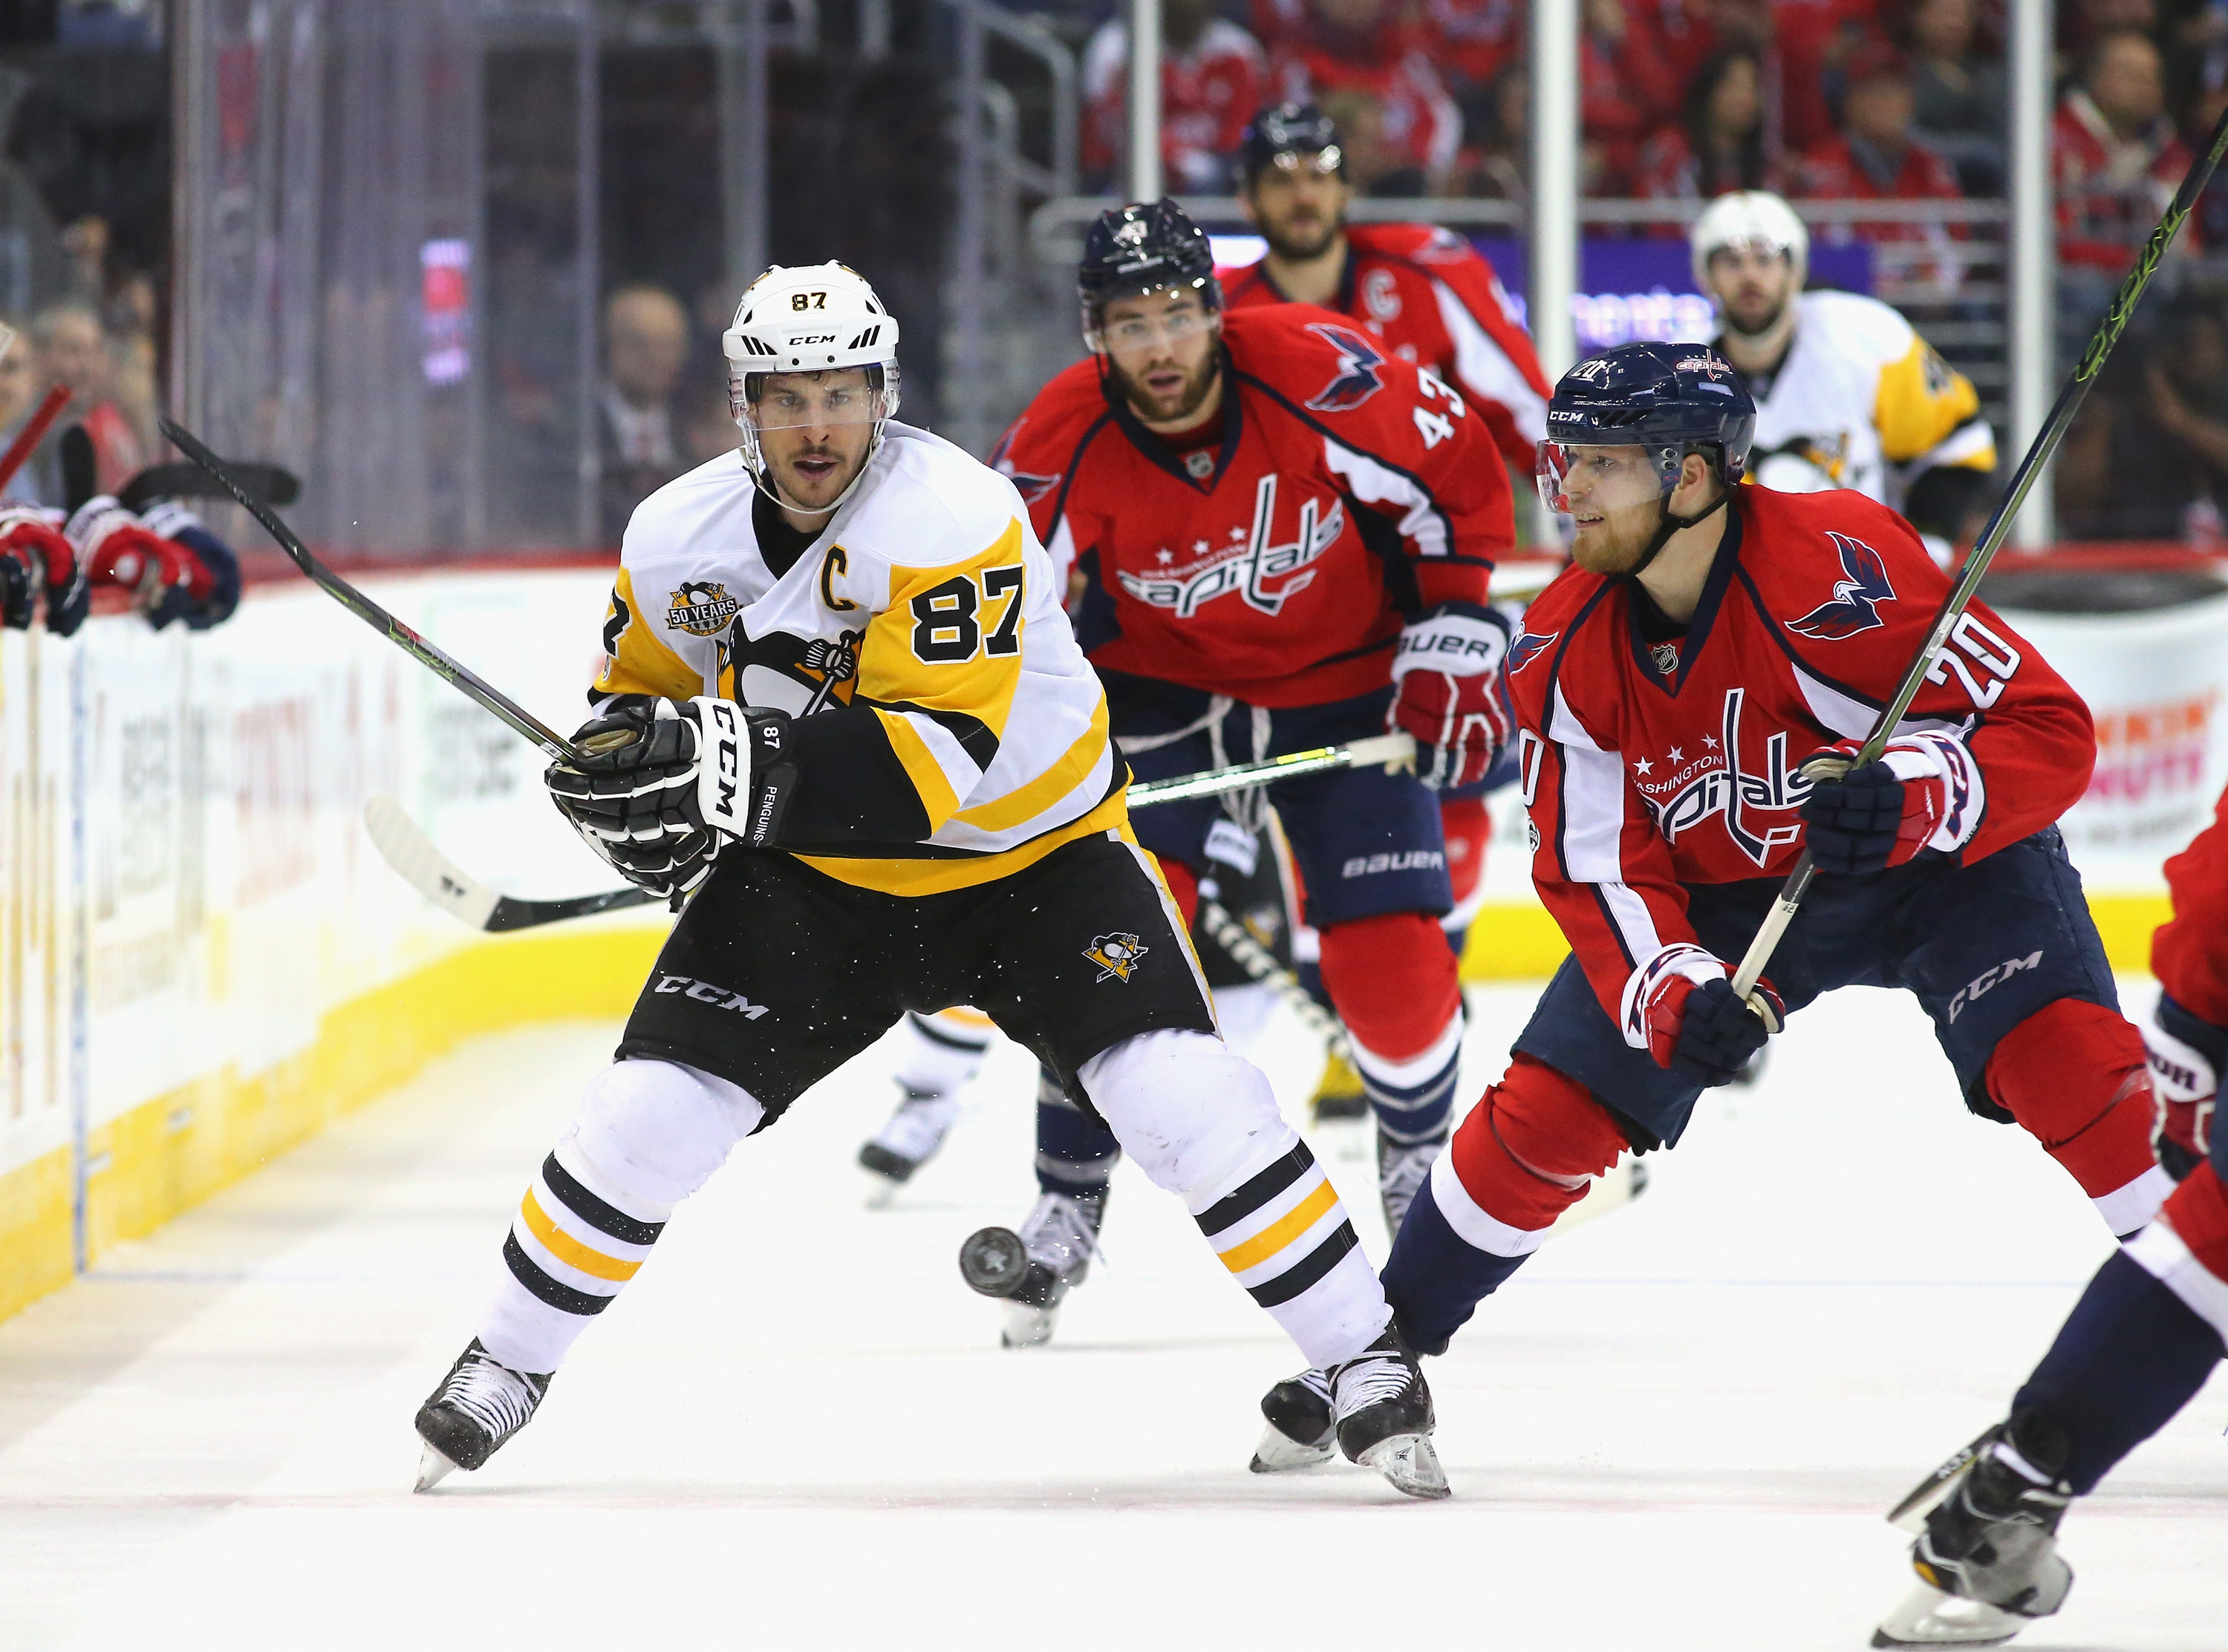 Sidney Crosby and the Penguins will wrap up their playoff series with Washington on Wednesday night. (Getty Images)